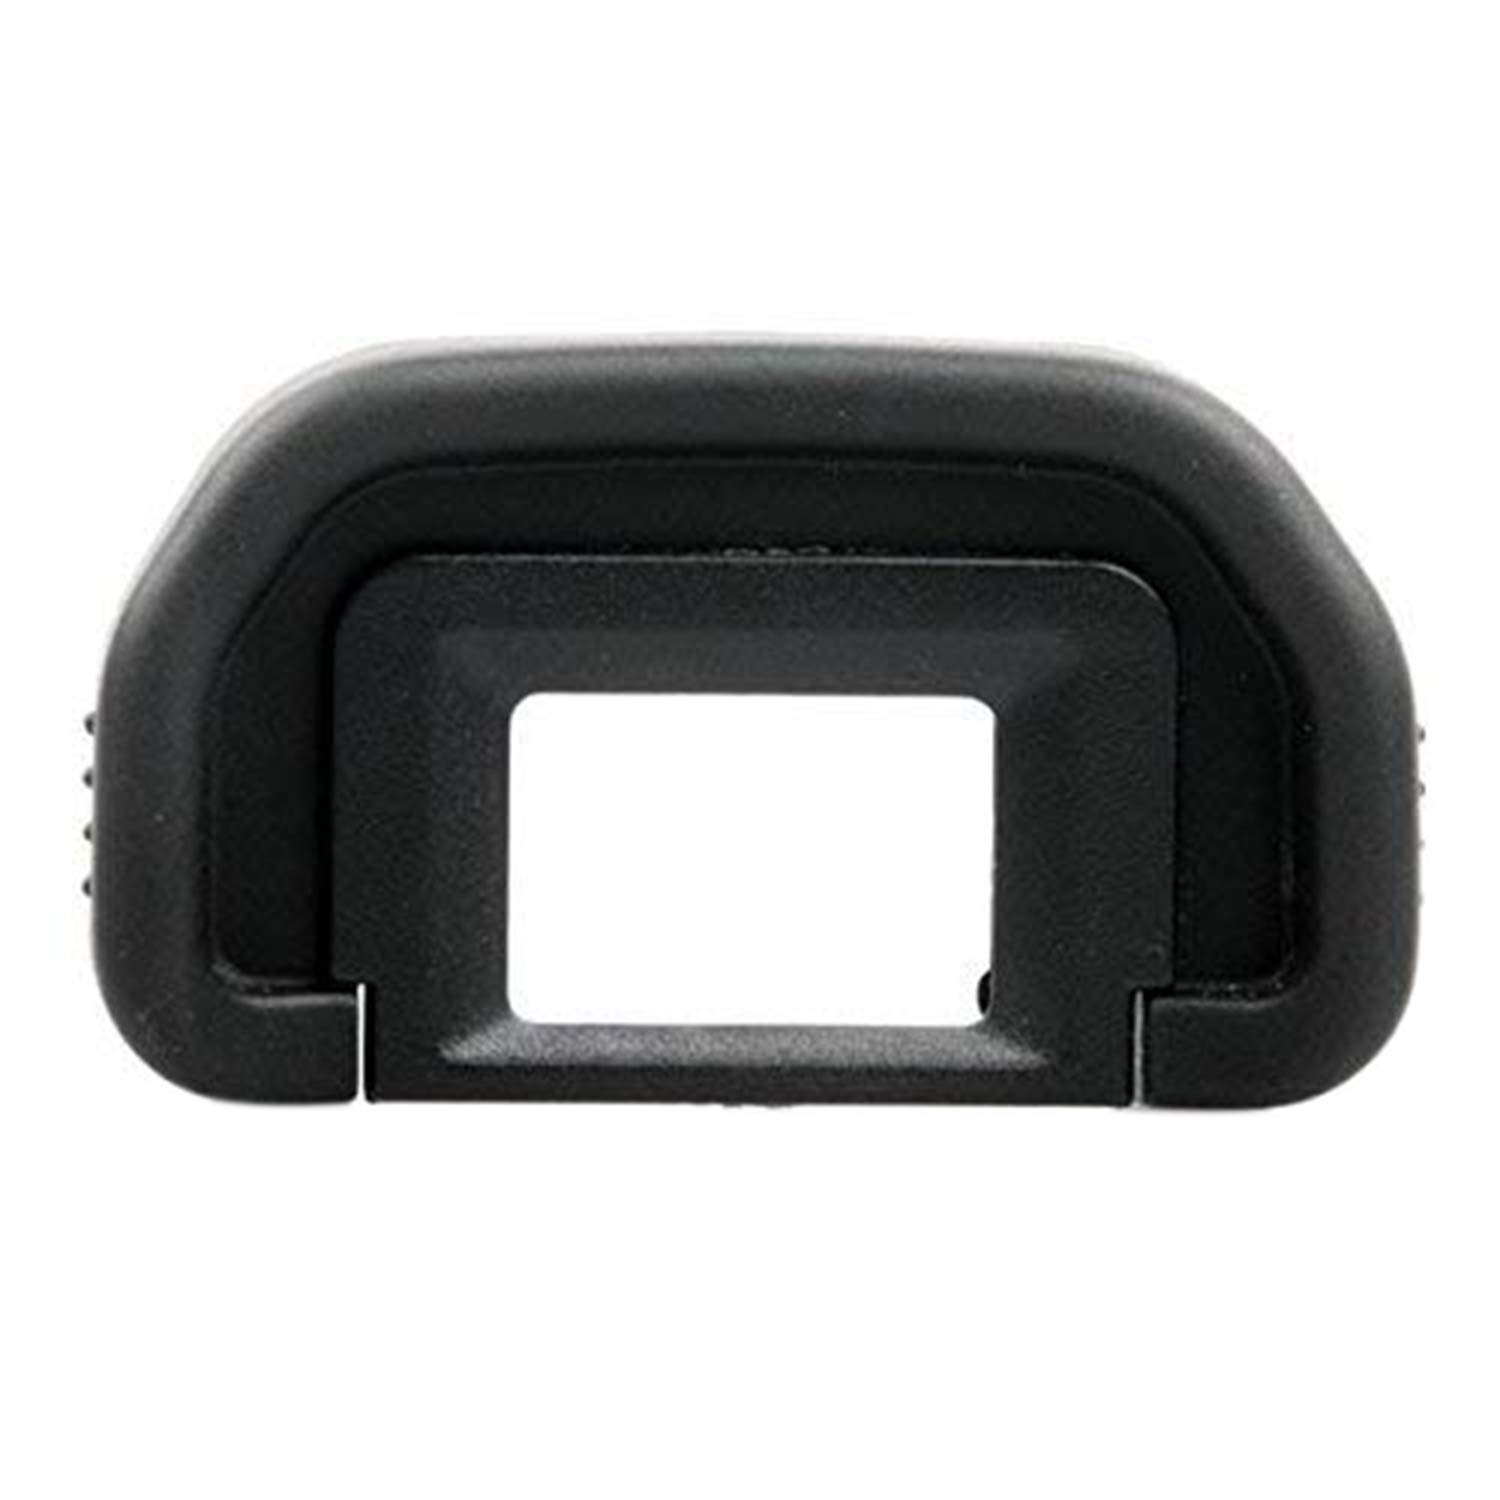 SODIAL Camera Eyepiece Eyecup 18Mm EB Replacement Viewfinder Protector for Canon Eos 80D 70D 60D 77D 50D 5D 5D Mark Ii 6D 6D Mark Ii 40D 30D 20D 20Da 10D 60Da A2 A2E D30 D60 by SODIAL (Image #3)